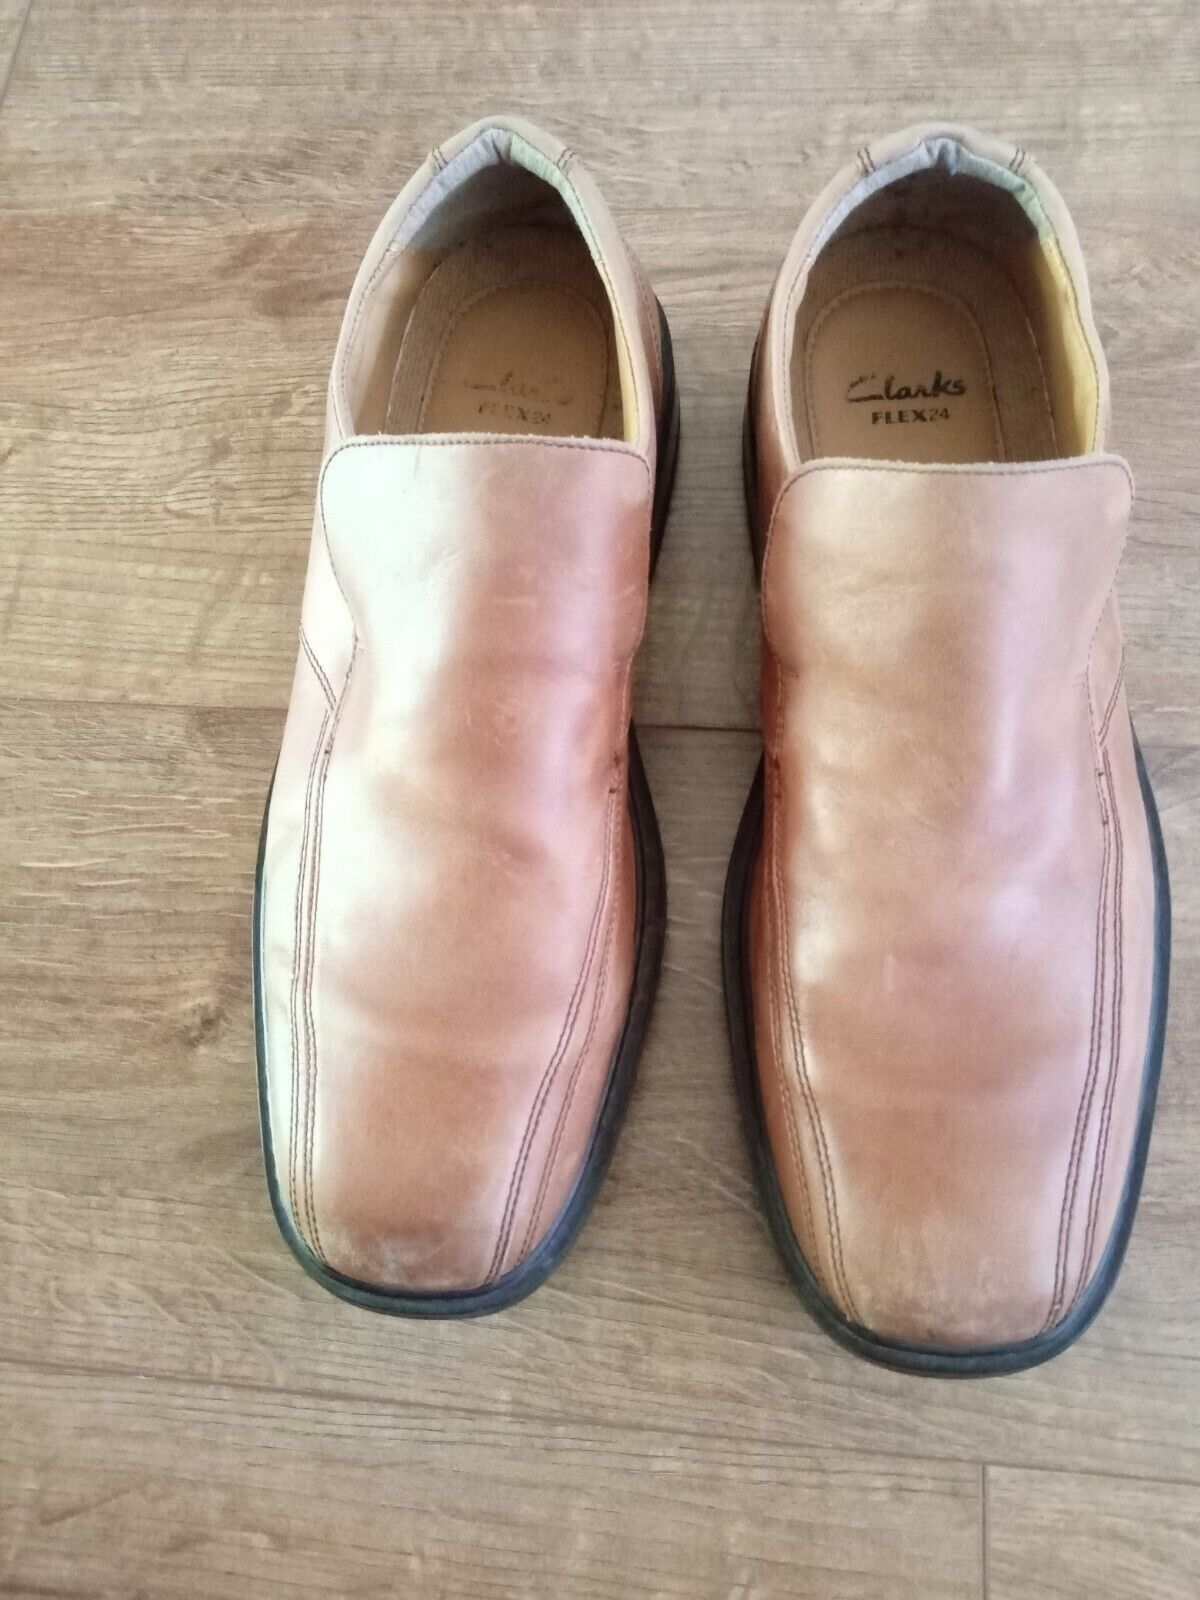 CLARKS BROWN FLEX 24 MENS SHOES SIZE UK 10.5/Euro 44.5, Condition is Used